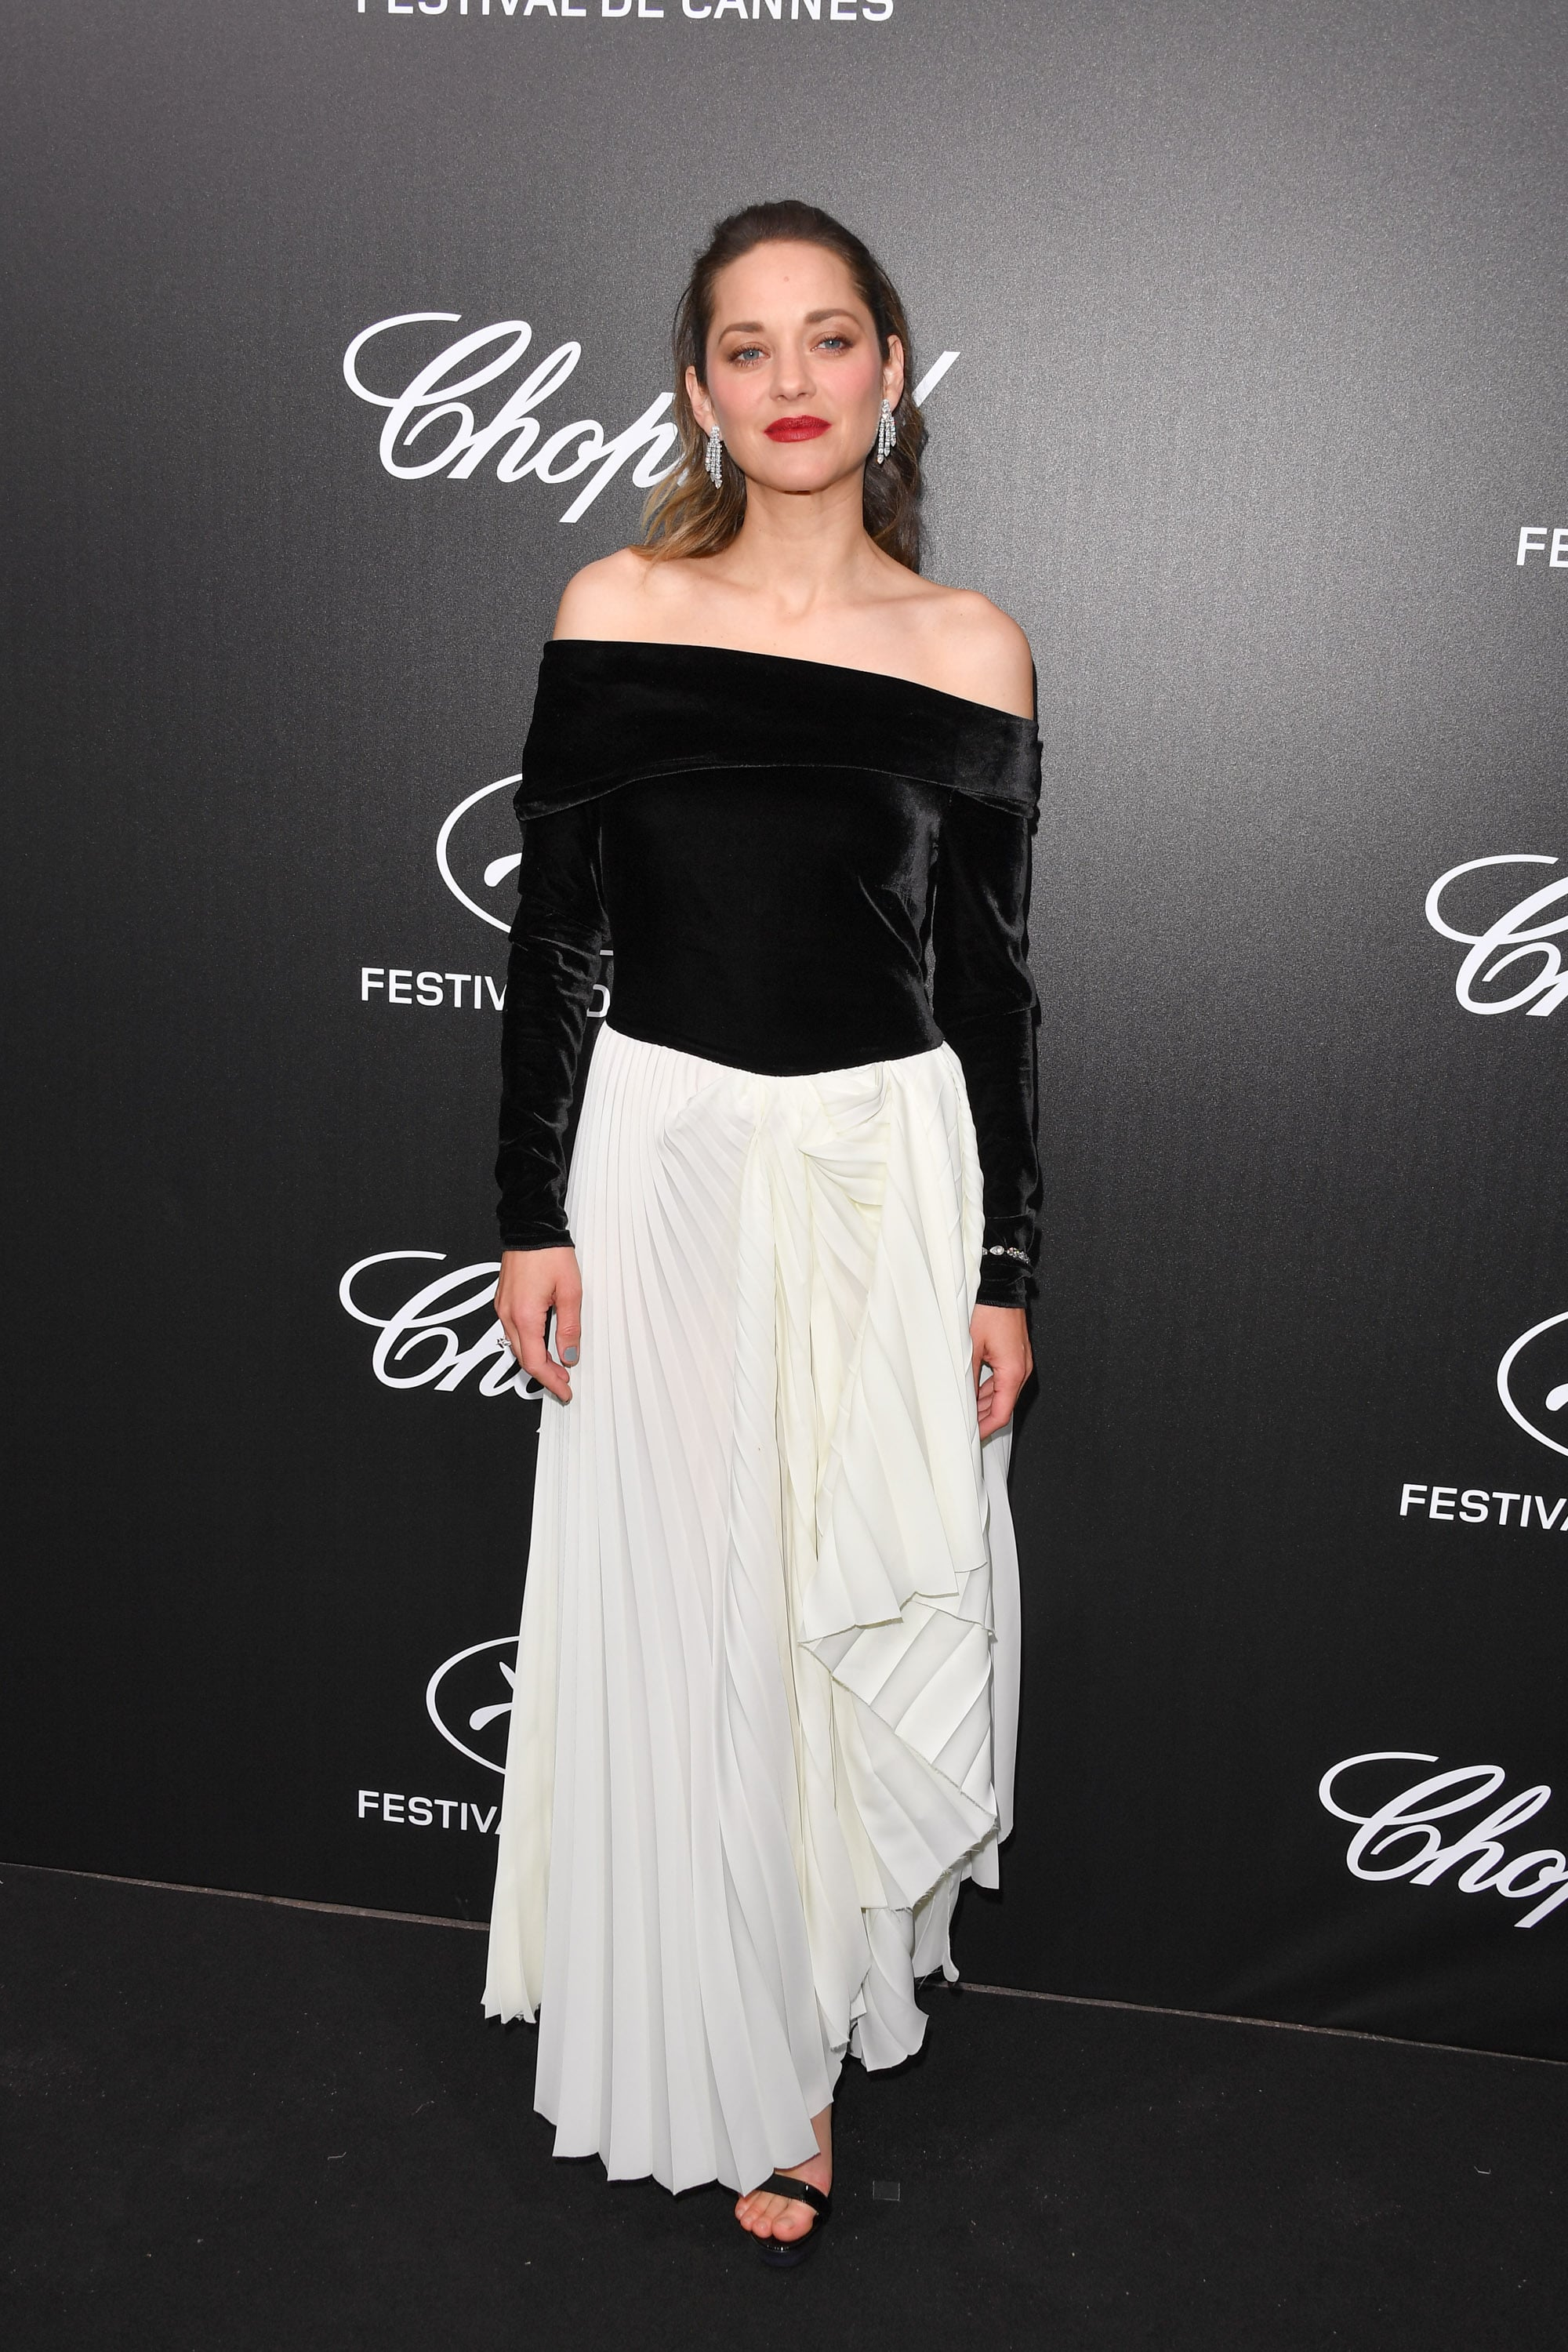 Marion Cotillard At The 2019 Cannes Film Festival These Cannes